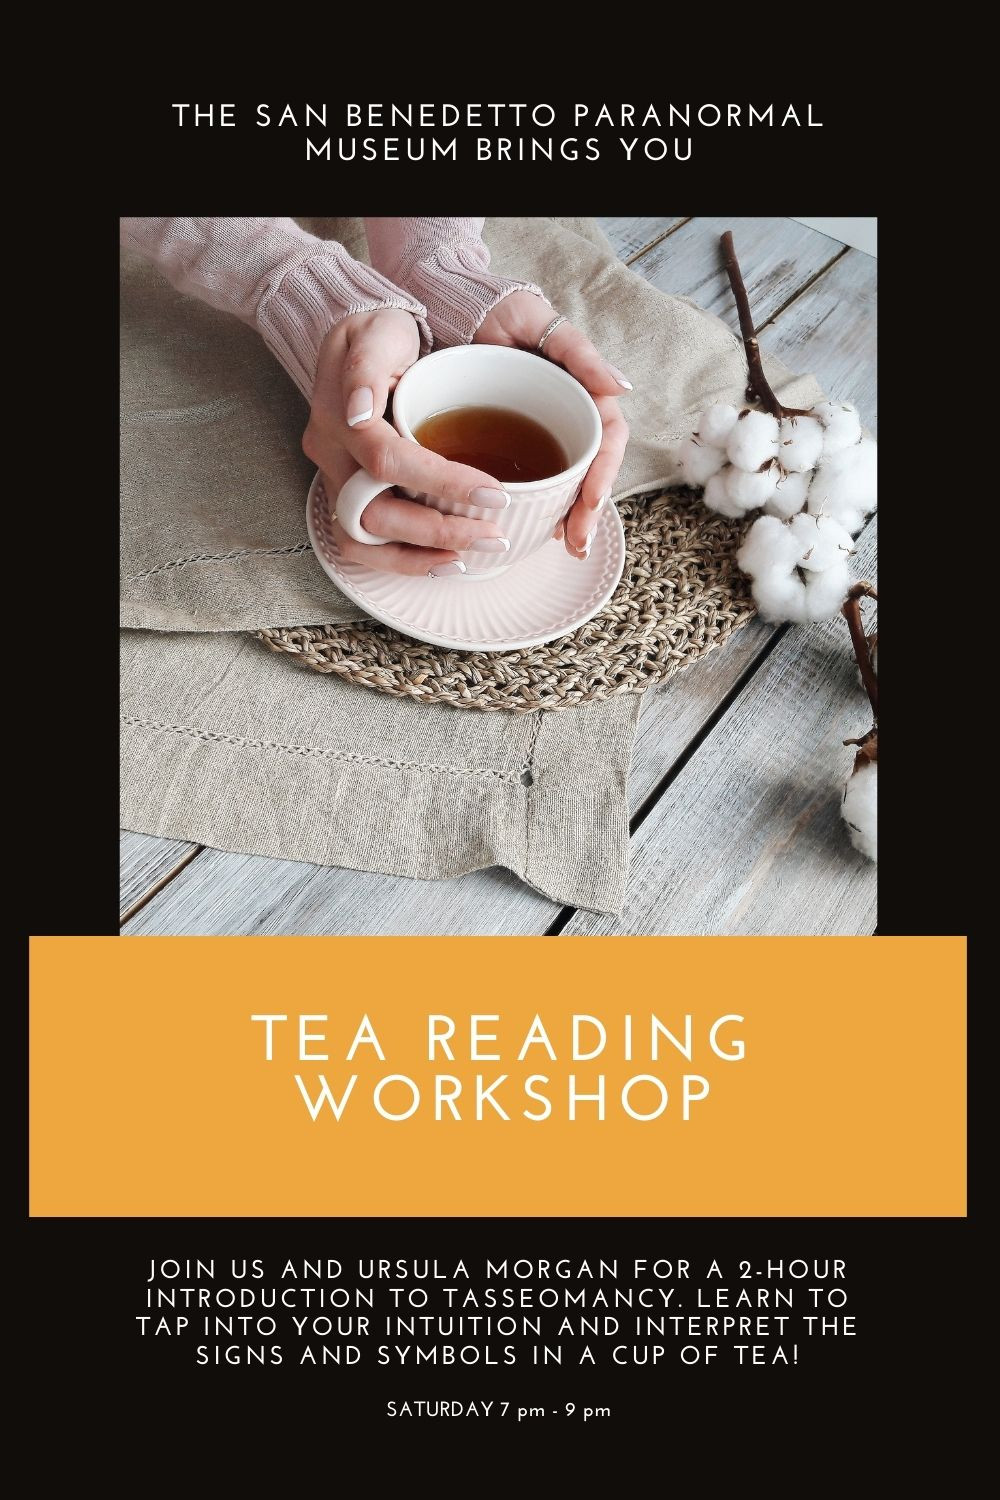 The San Benedetto Paranormal Museum Brings You a Tea Reading workshop. JOIN US AND URSULA MORGAN FOR A 2-HOUR INTRODUCTION TO TASSEOMANCY. lEARN to tap into your intuition and INTERPRET THE SIGNS AND SYMBOLS IN a cup of TEA!